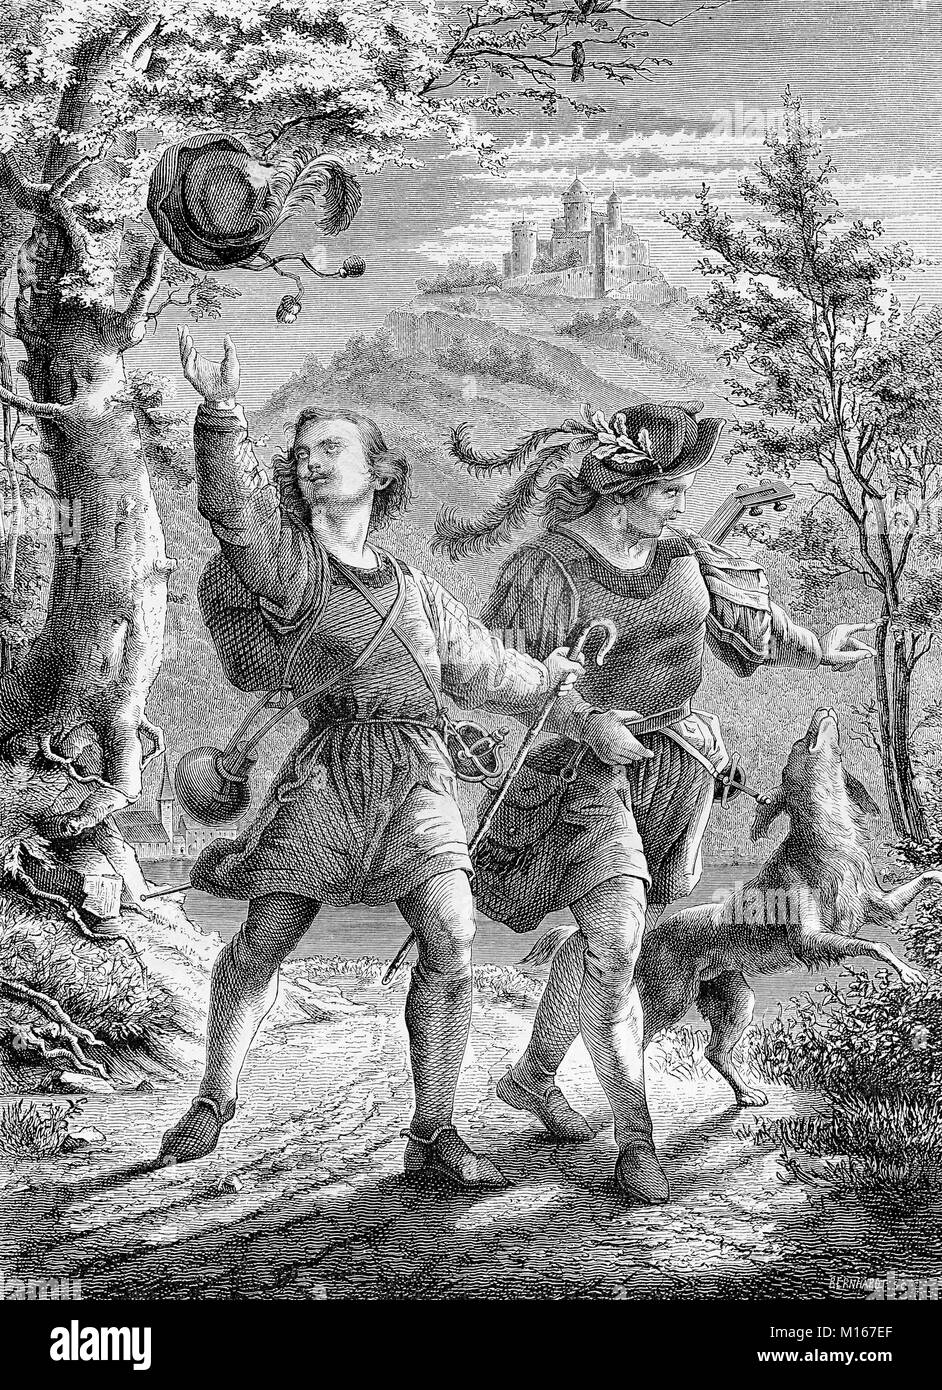 The wanderers, two happy joung men walk with dog in an idyllic landscape, vintage engraving - Stock Image